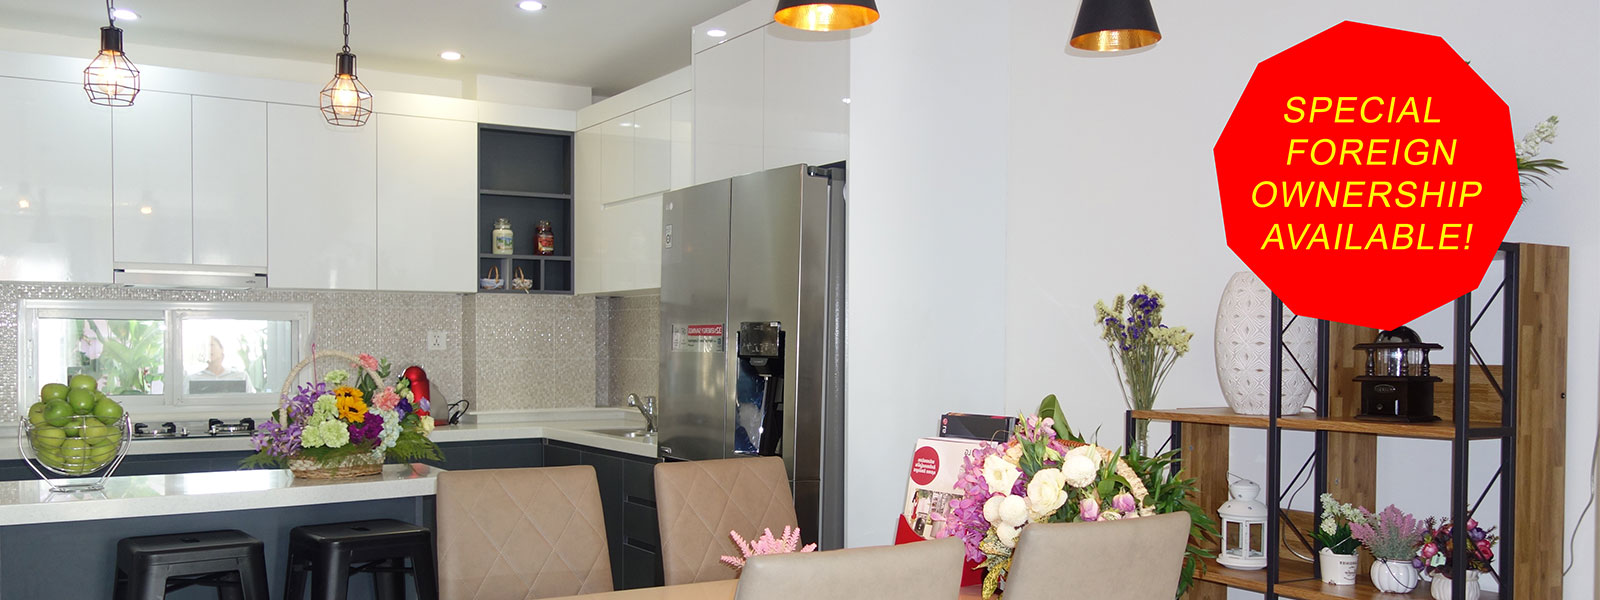 Apartments for Sale in Siem Reap